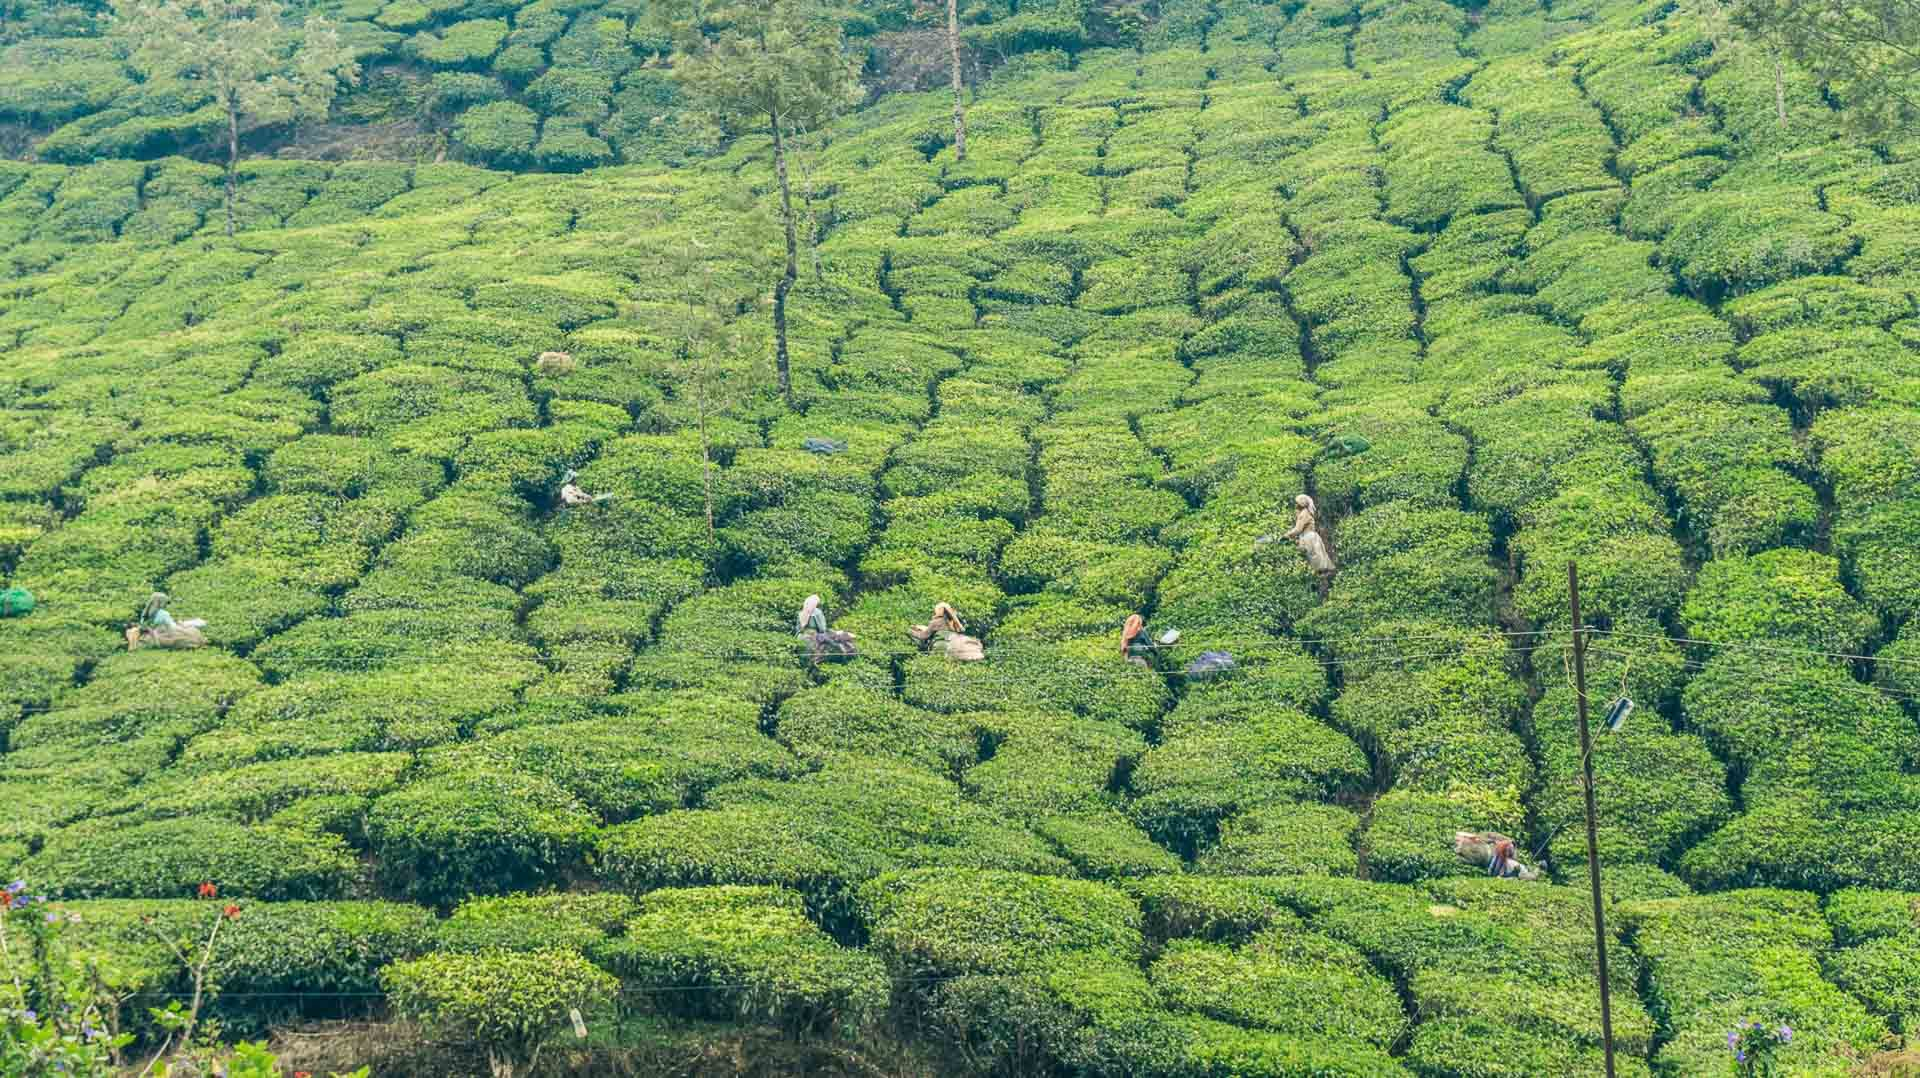 Thee plukkers in Munnar, Kerala, India